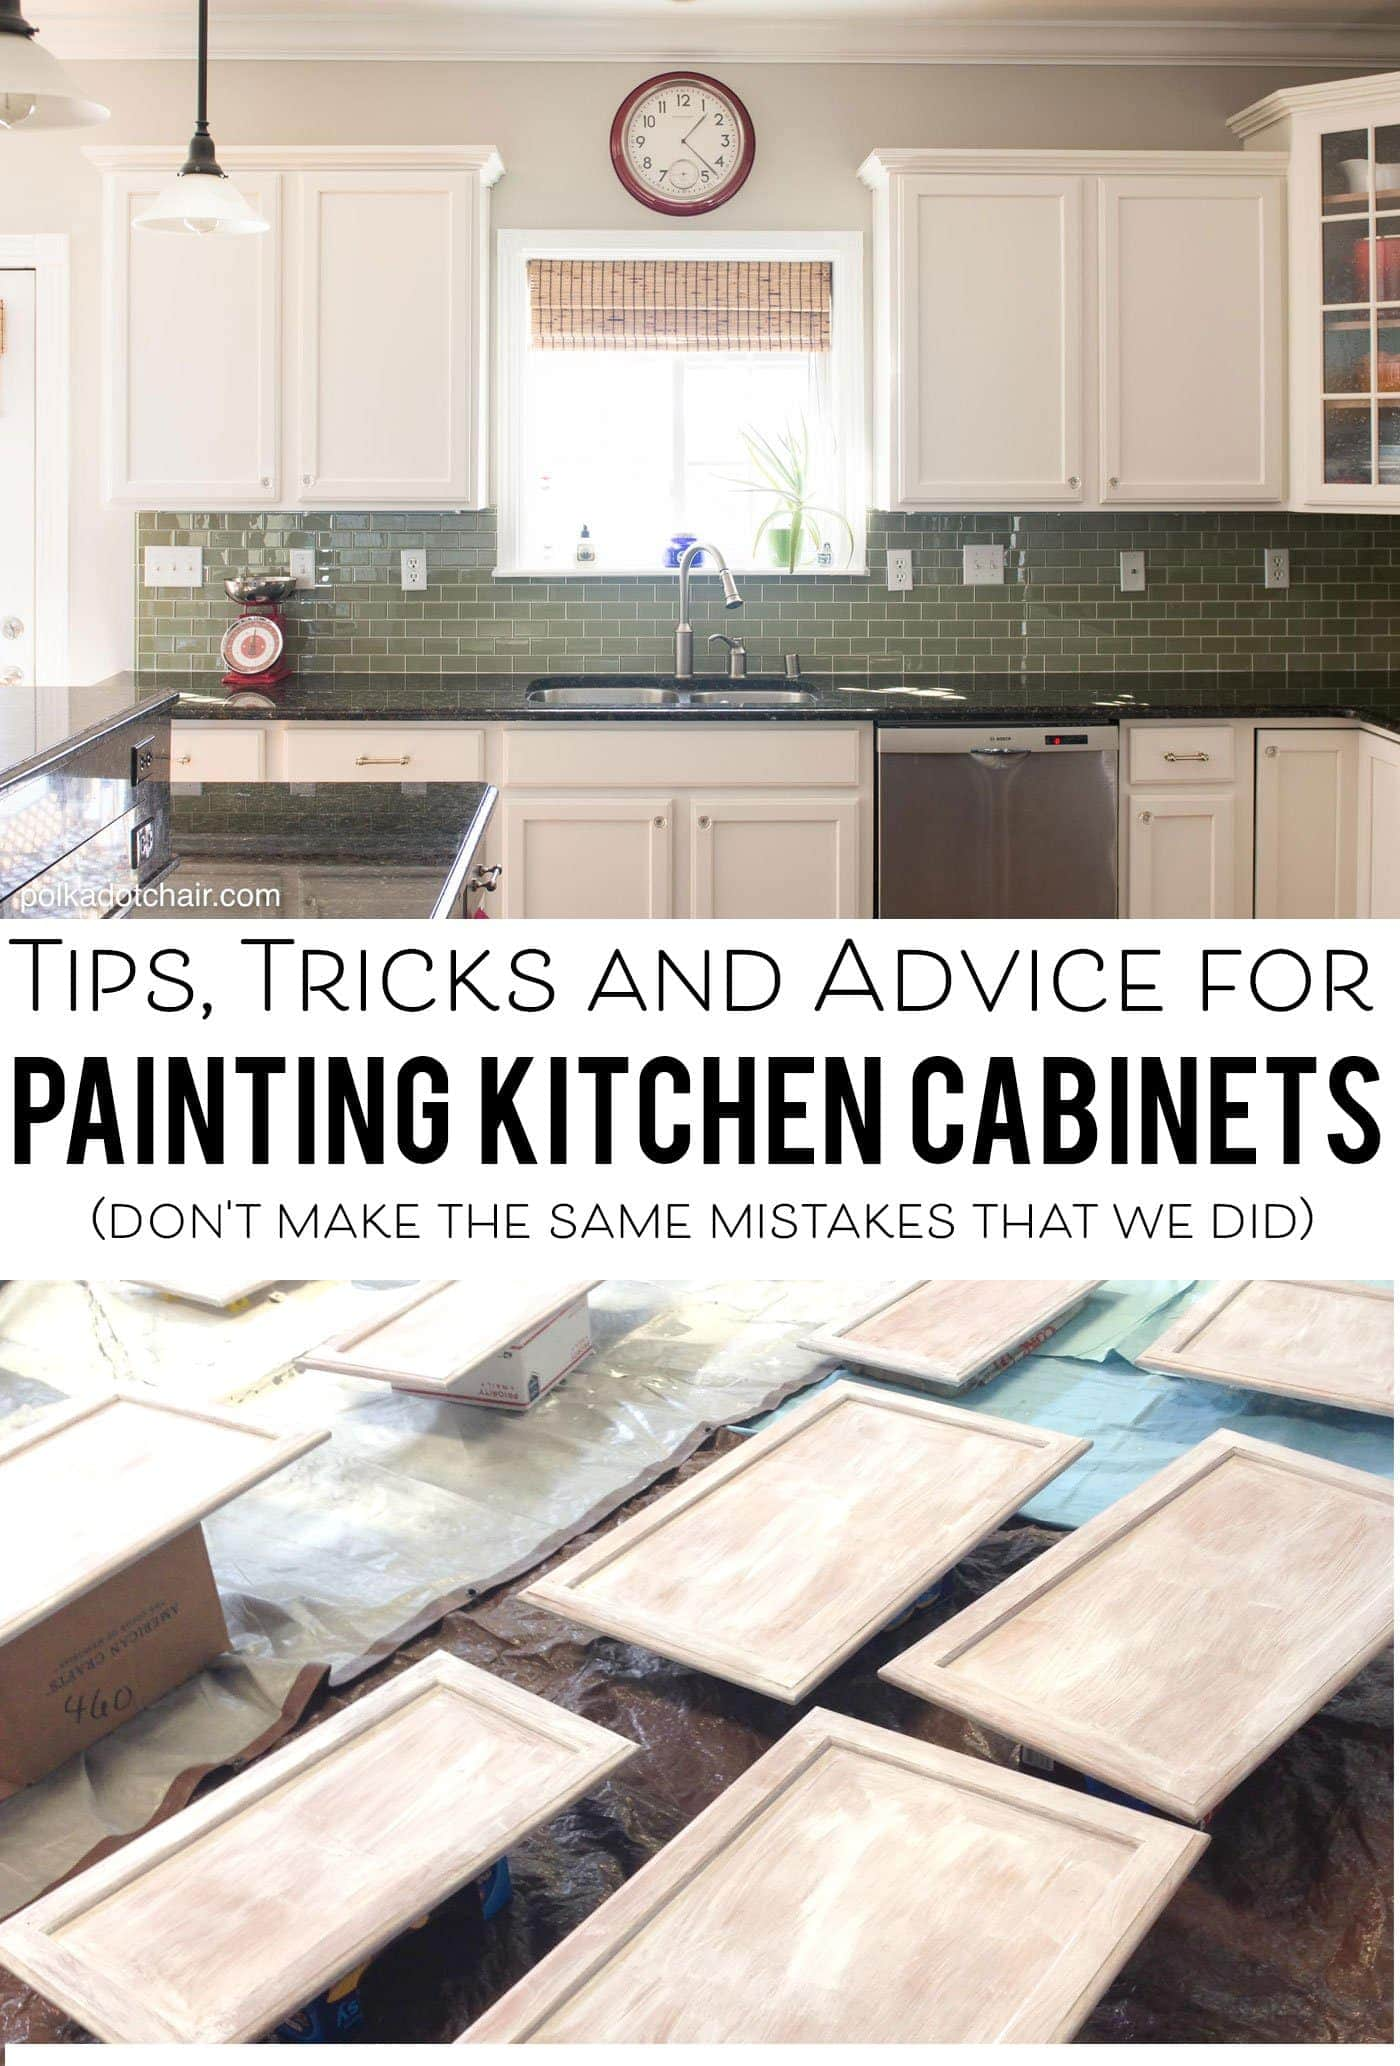 Tips for Painting Kitchen Cabinets - The Polka Dot Chair